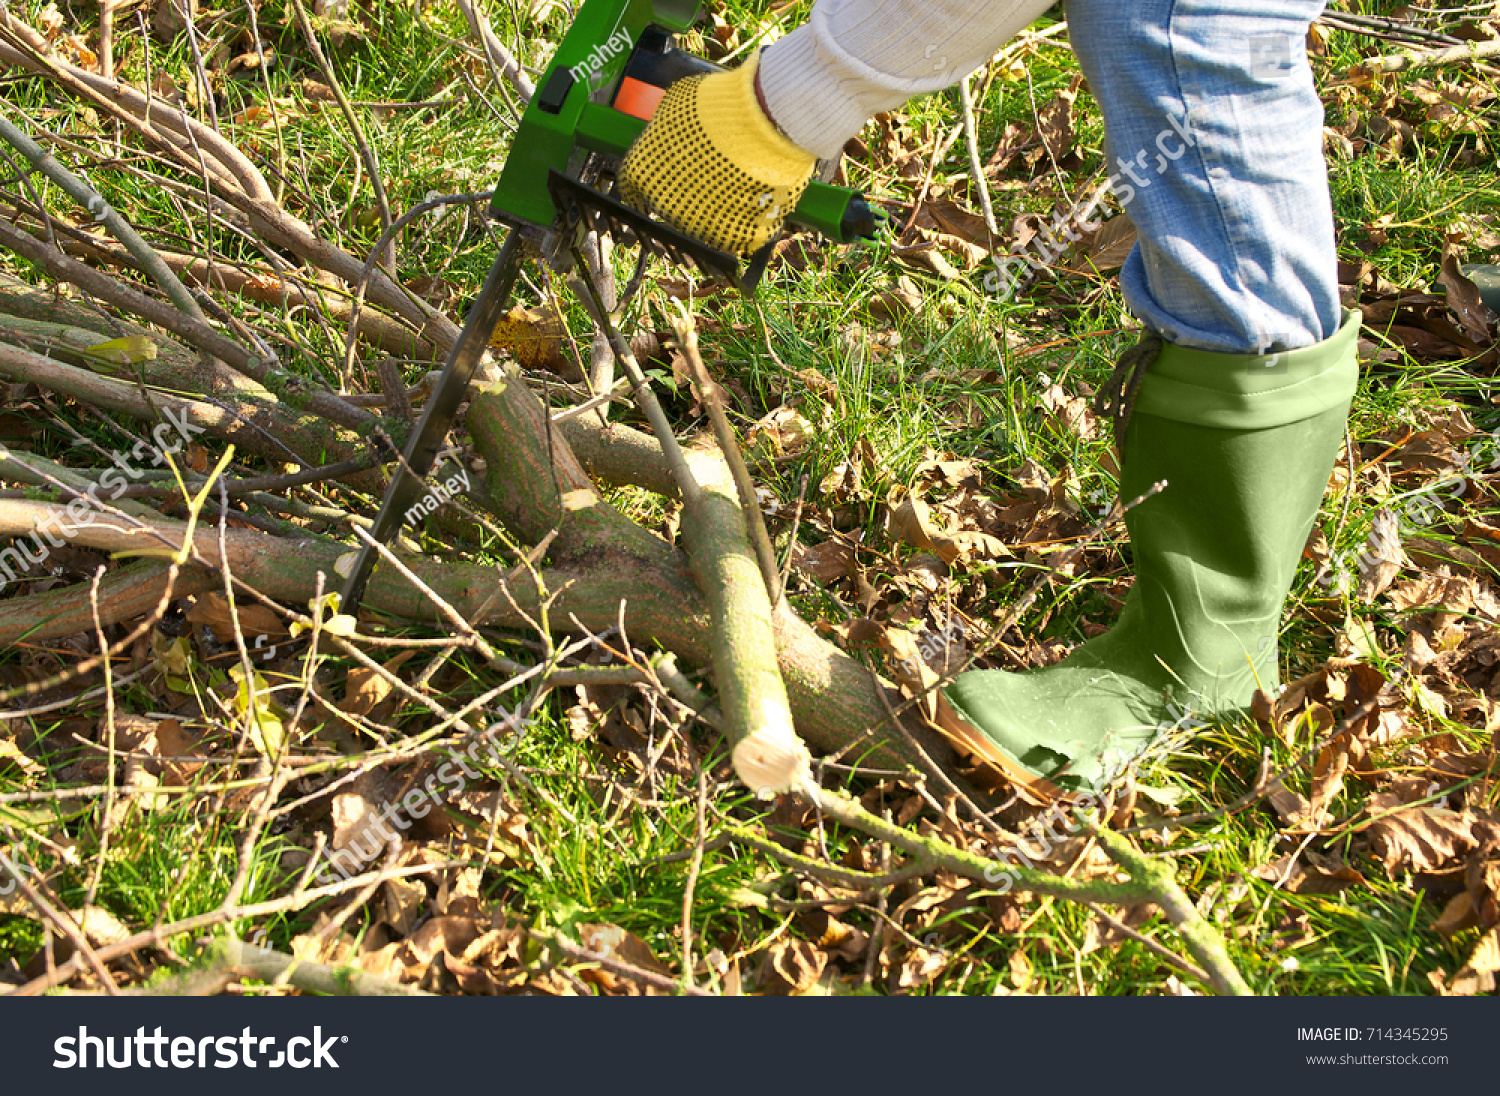 Sawing Branches Chainsaw Garden Works Tree Stock Photo (Edit Now ...